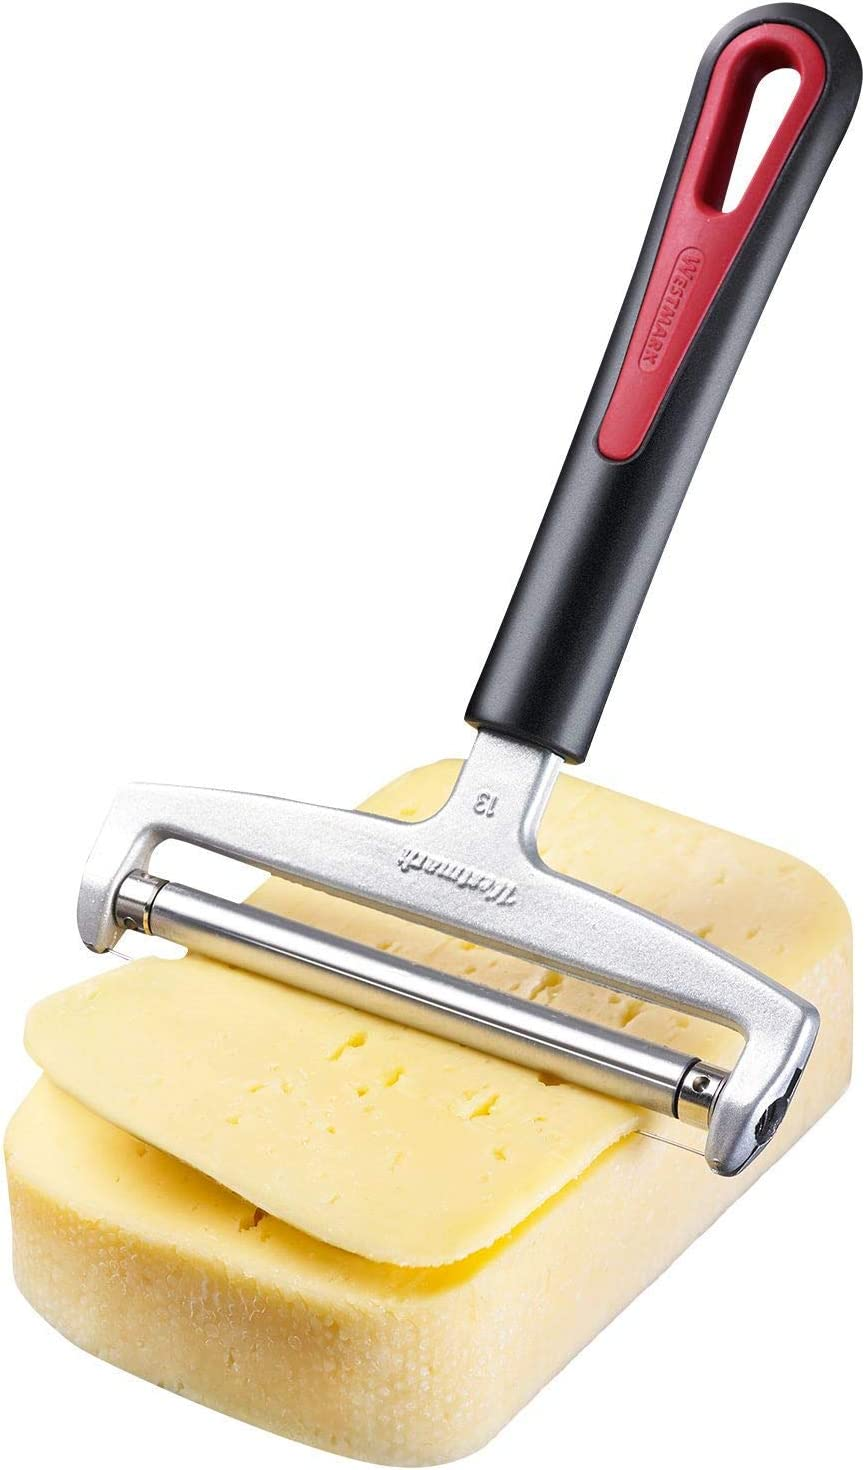 Best Cheese Slicers For Home (2021): Top 10 Review 1